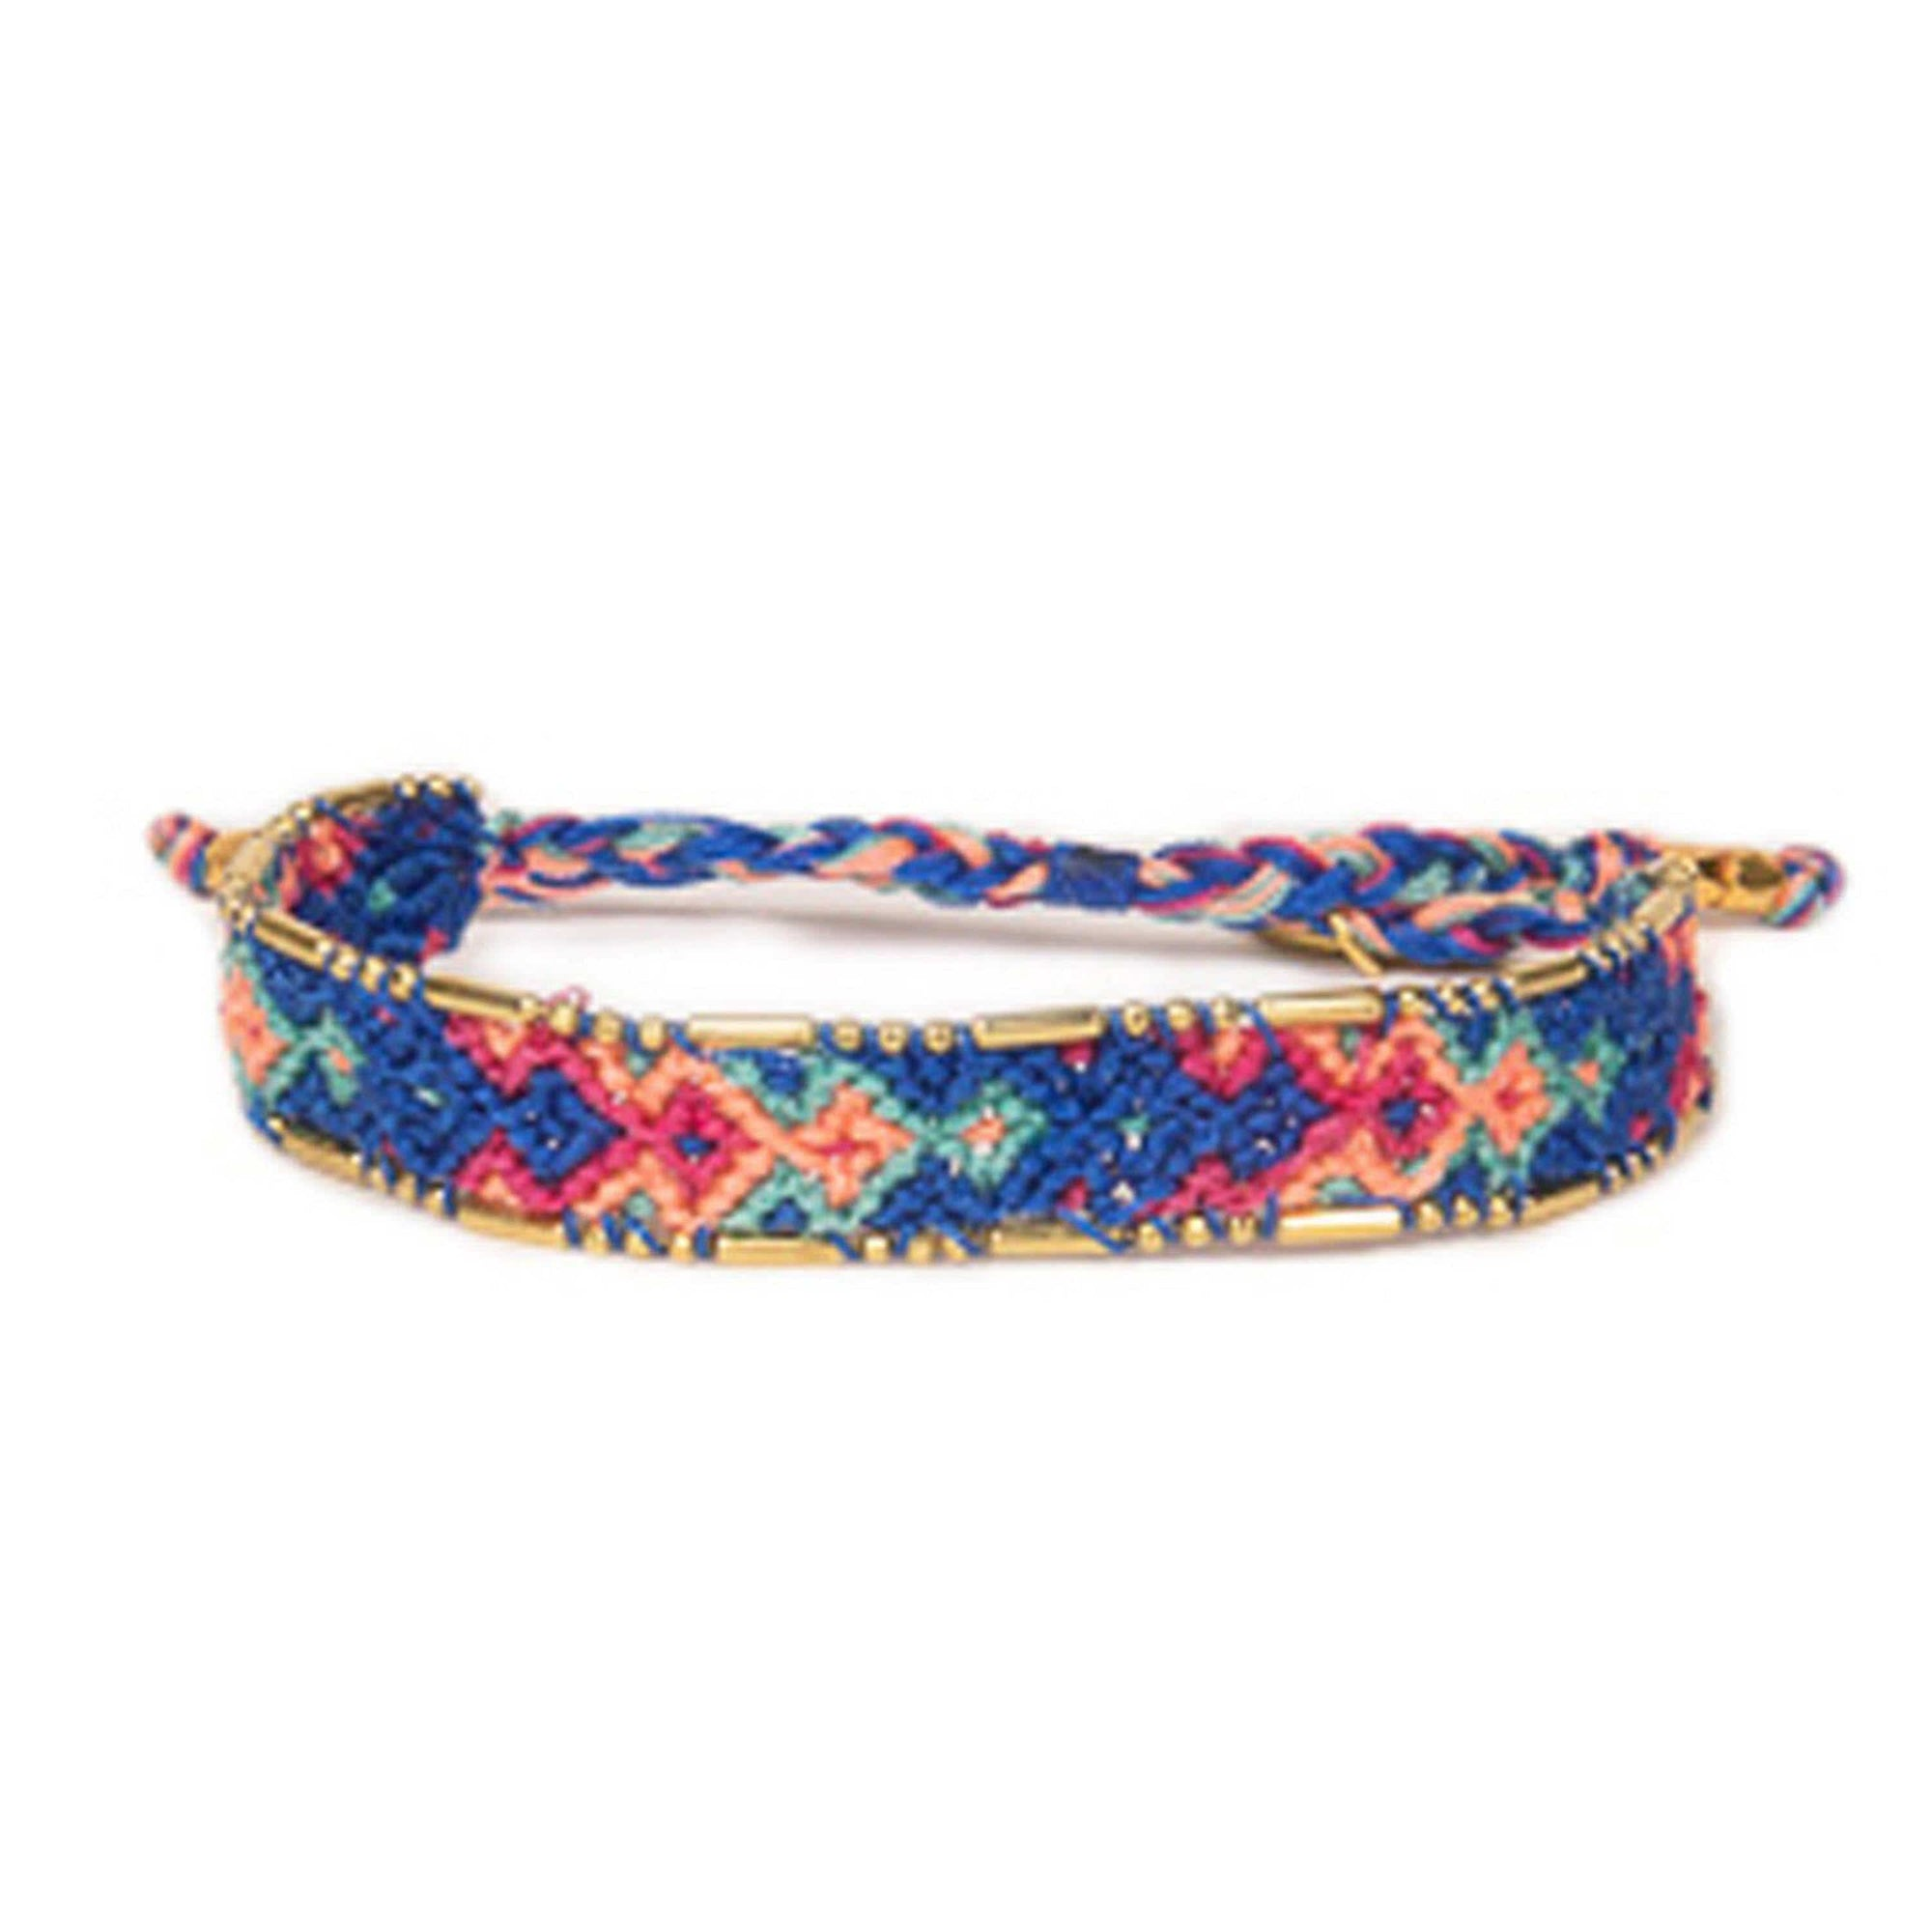 Bali Friendship Bracelet - Sunset Canggu Love Is Project woven bracelets by artisans in Indonesia. Beaded bracelets creates jobs.